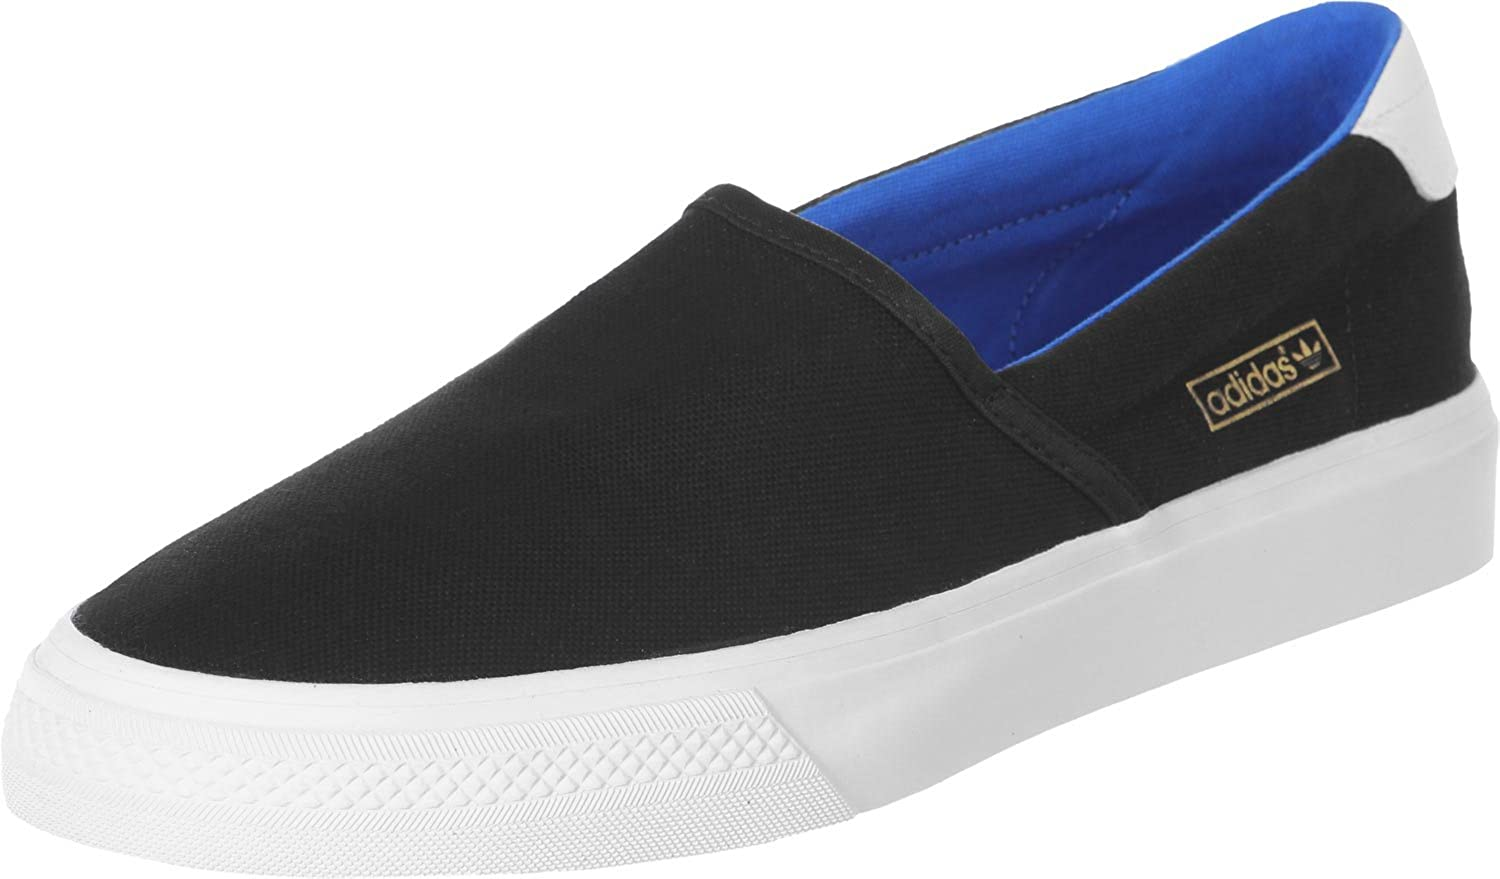 a1062735cd80 adidas Mens Originals Adidrill Vulc Trainers in Black  Amazon.co.uk  Shoes    Bags